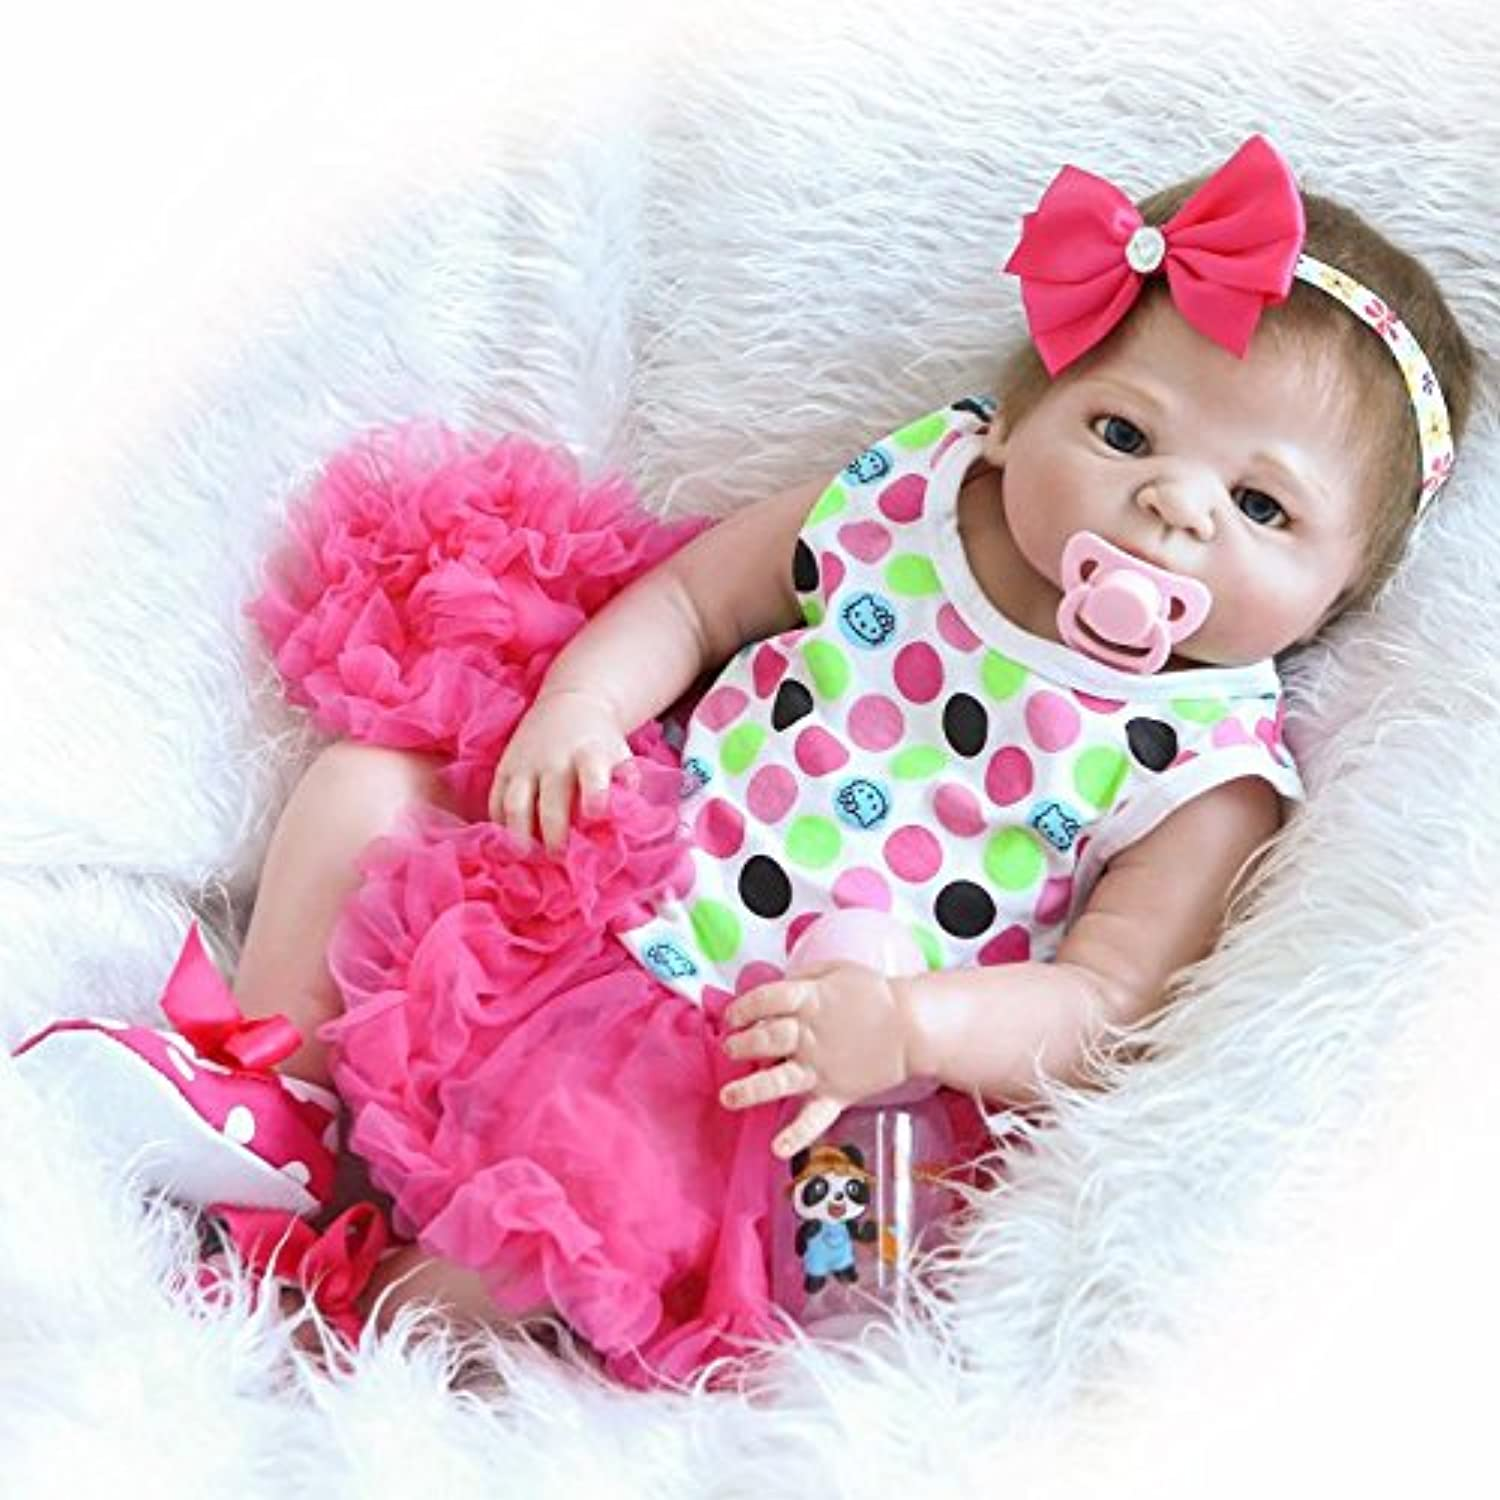 NKol Full Silicone Body Reborn Dolls Lifelike Newborn Realistic Baby Doll with Peach Tutu Skirt (Magnetic Mouth, Waterproof), 22inch 57cm Anatomically Correct Toys